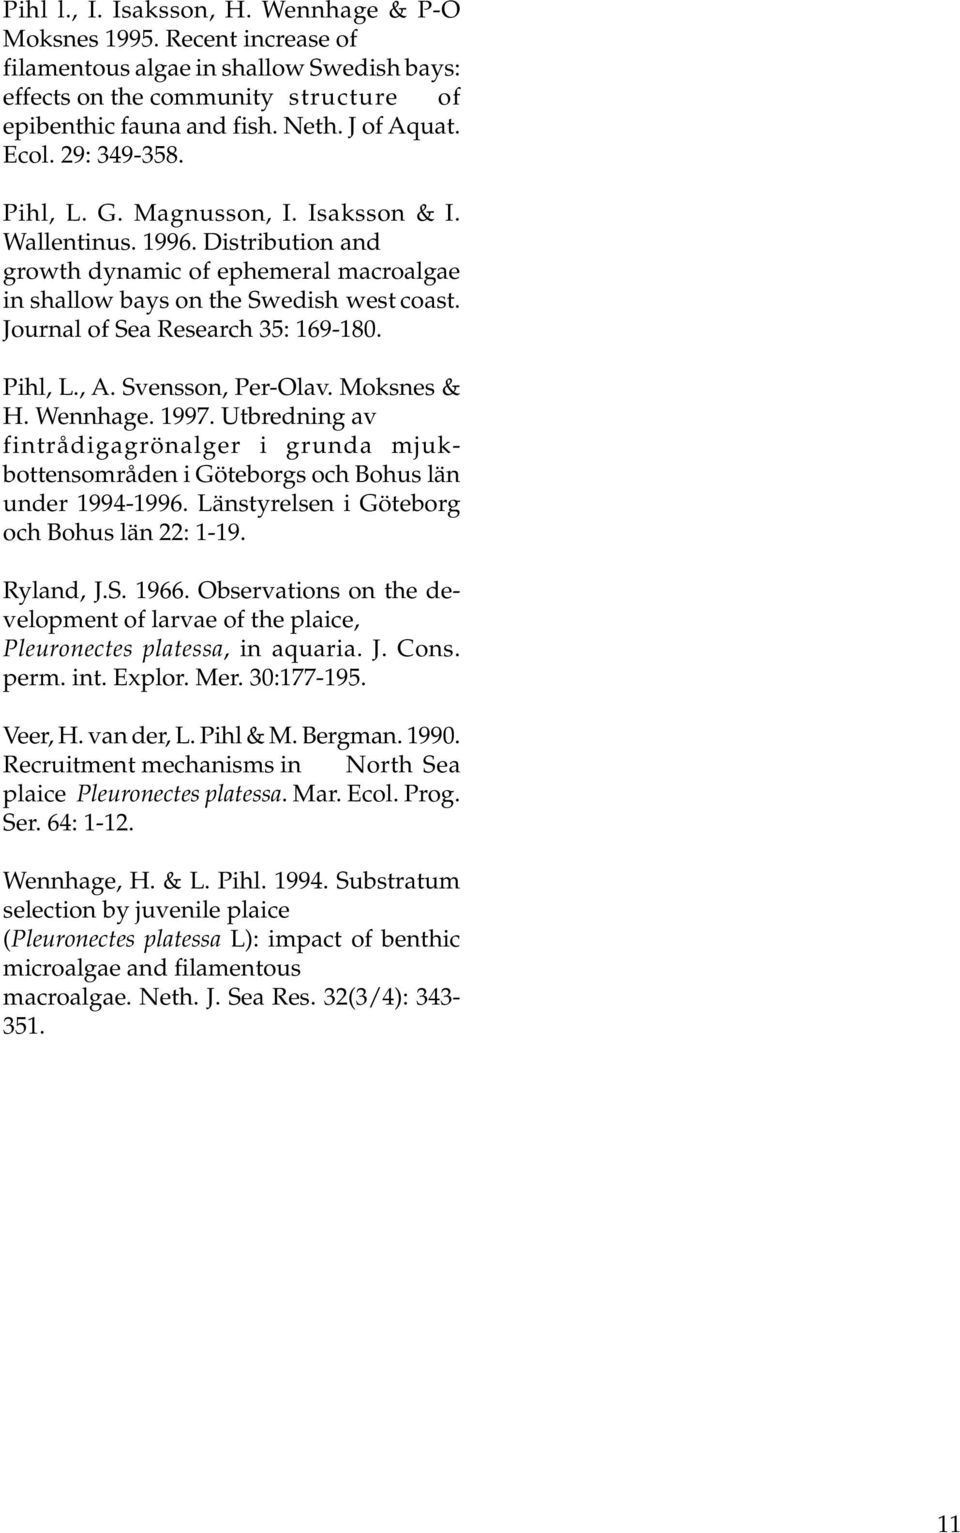 Journal of Sea Research 35: 169-180. Pihl, L., A. Svensson, Per-Olav. Moksnes & H. Wennhage. 1997.